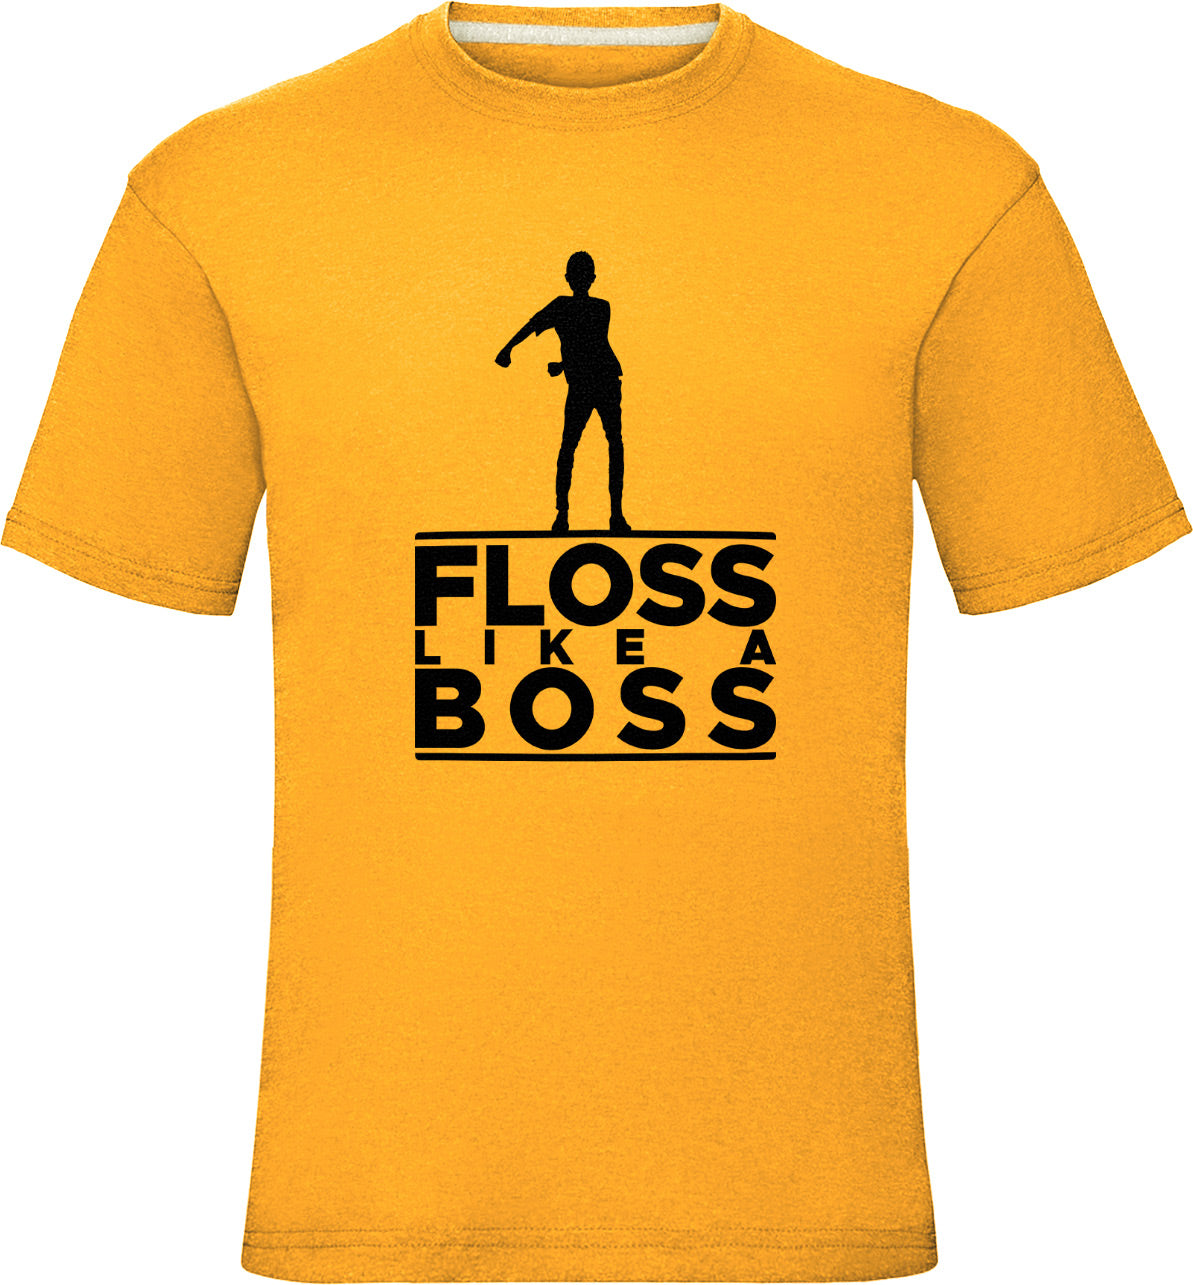 Floss Like a Boss Official T-shirt